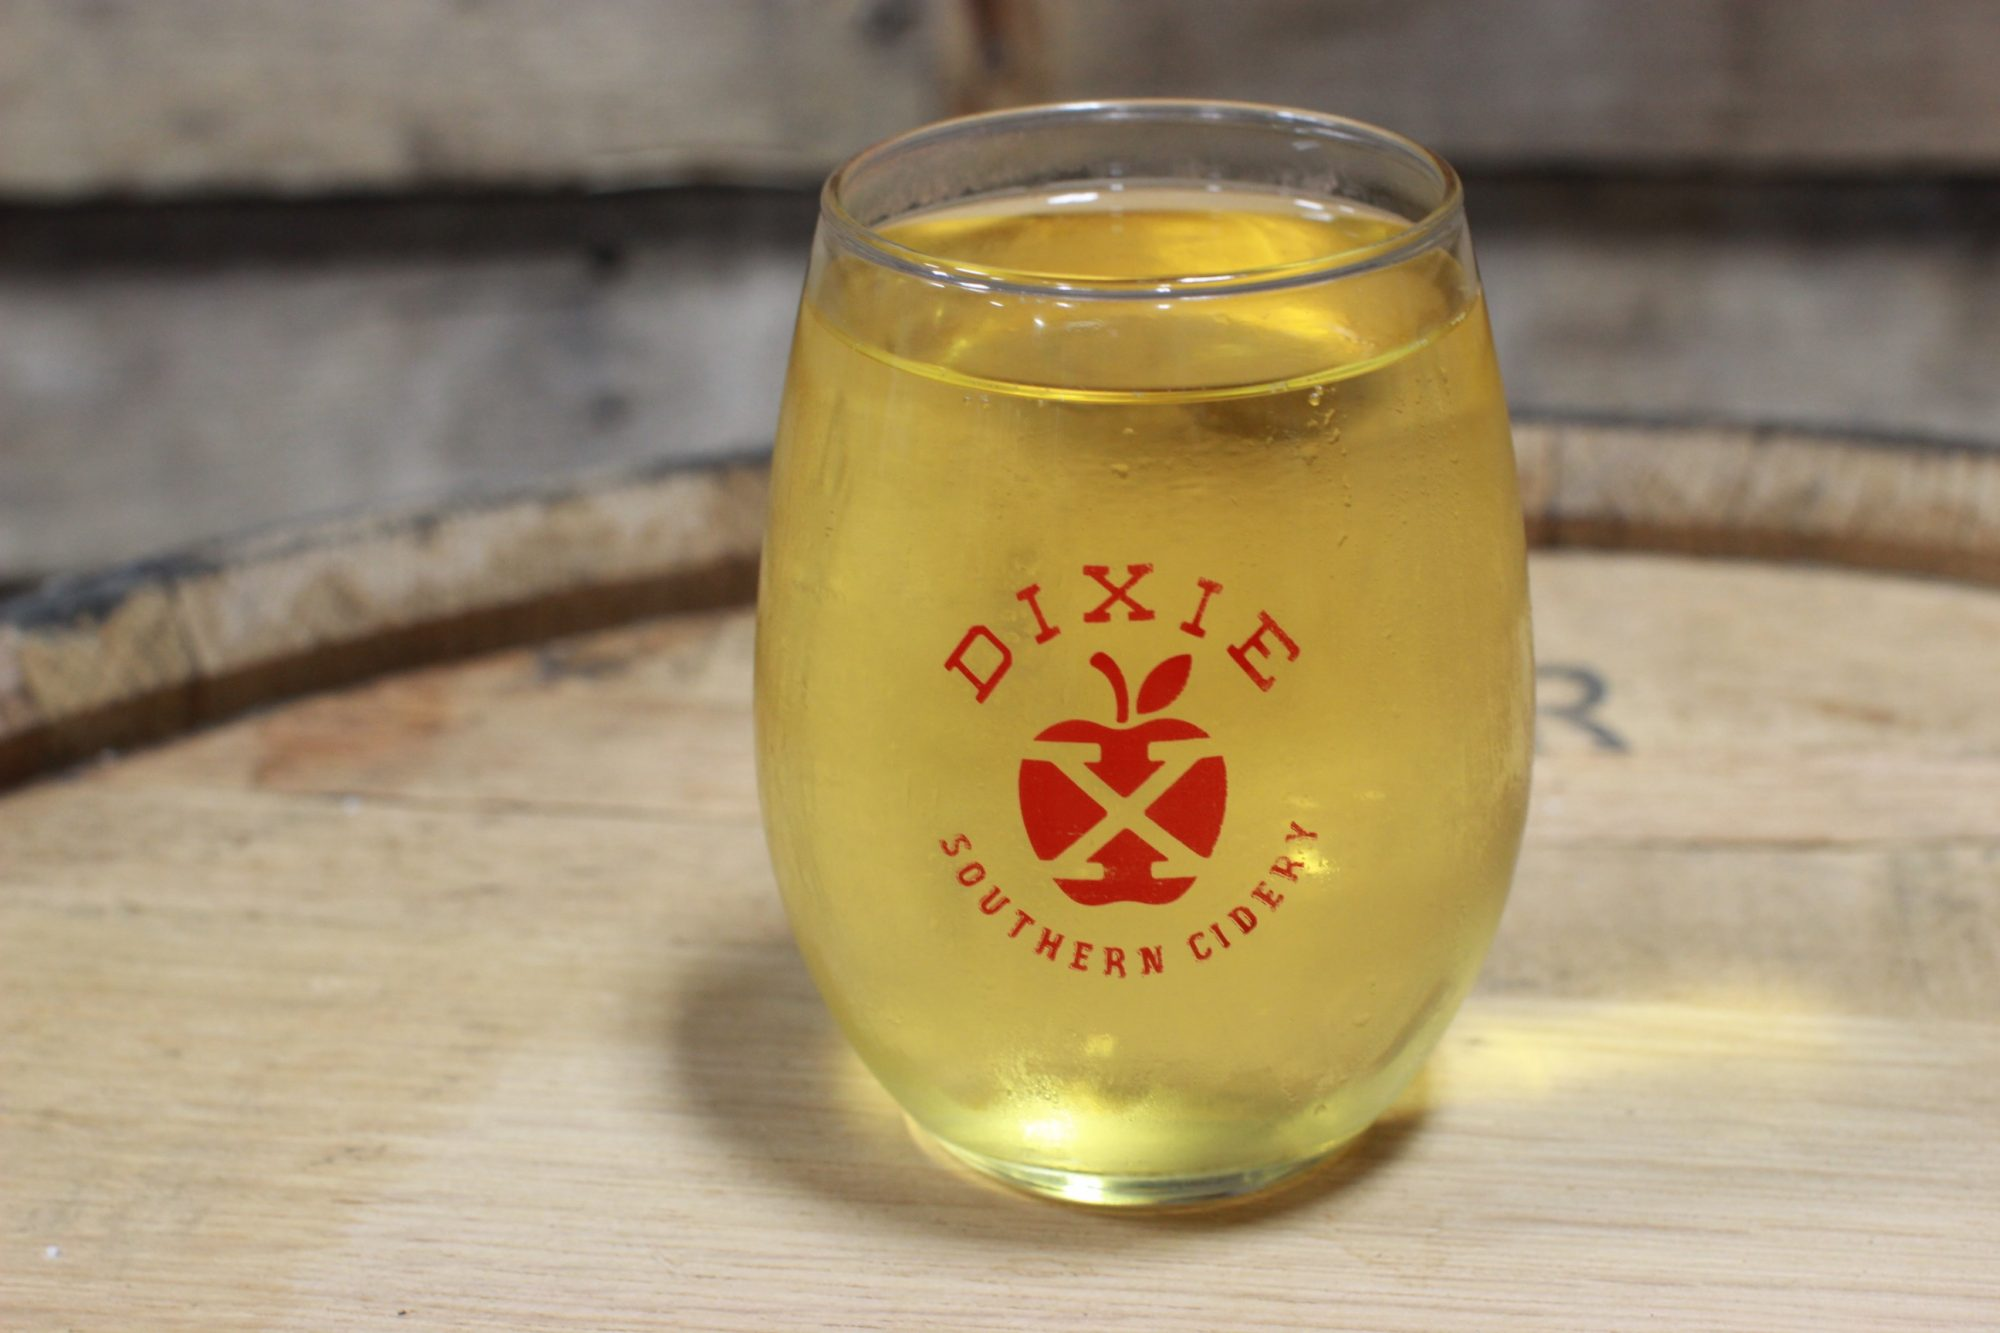 Dixie Southern Cidery is the first and only cidery in Alabama.